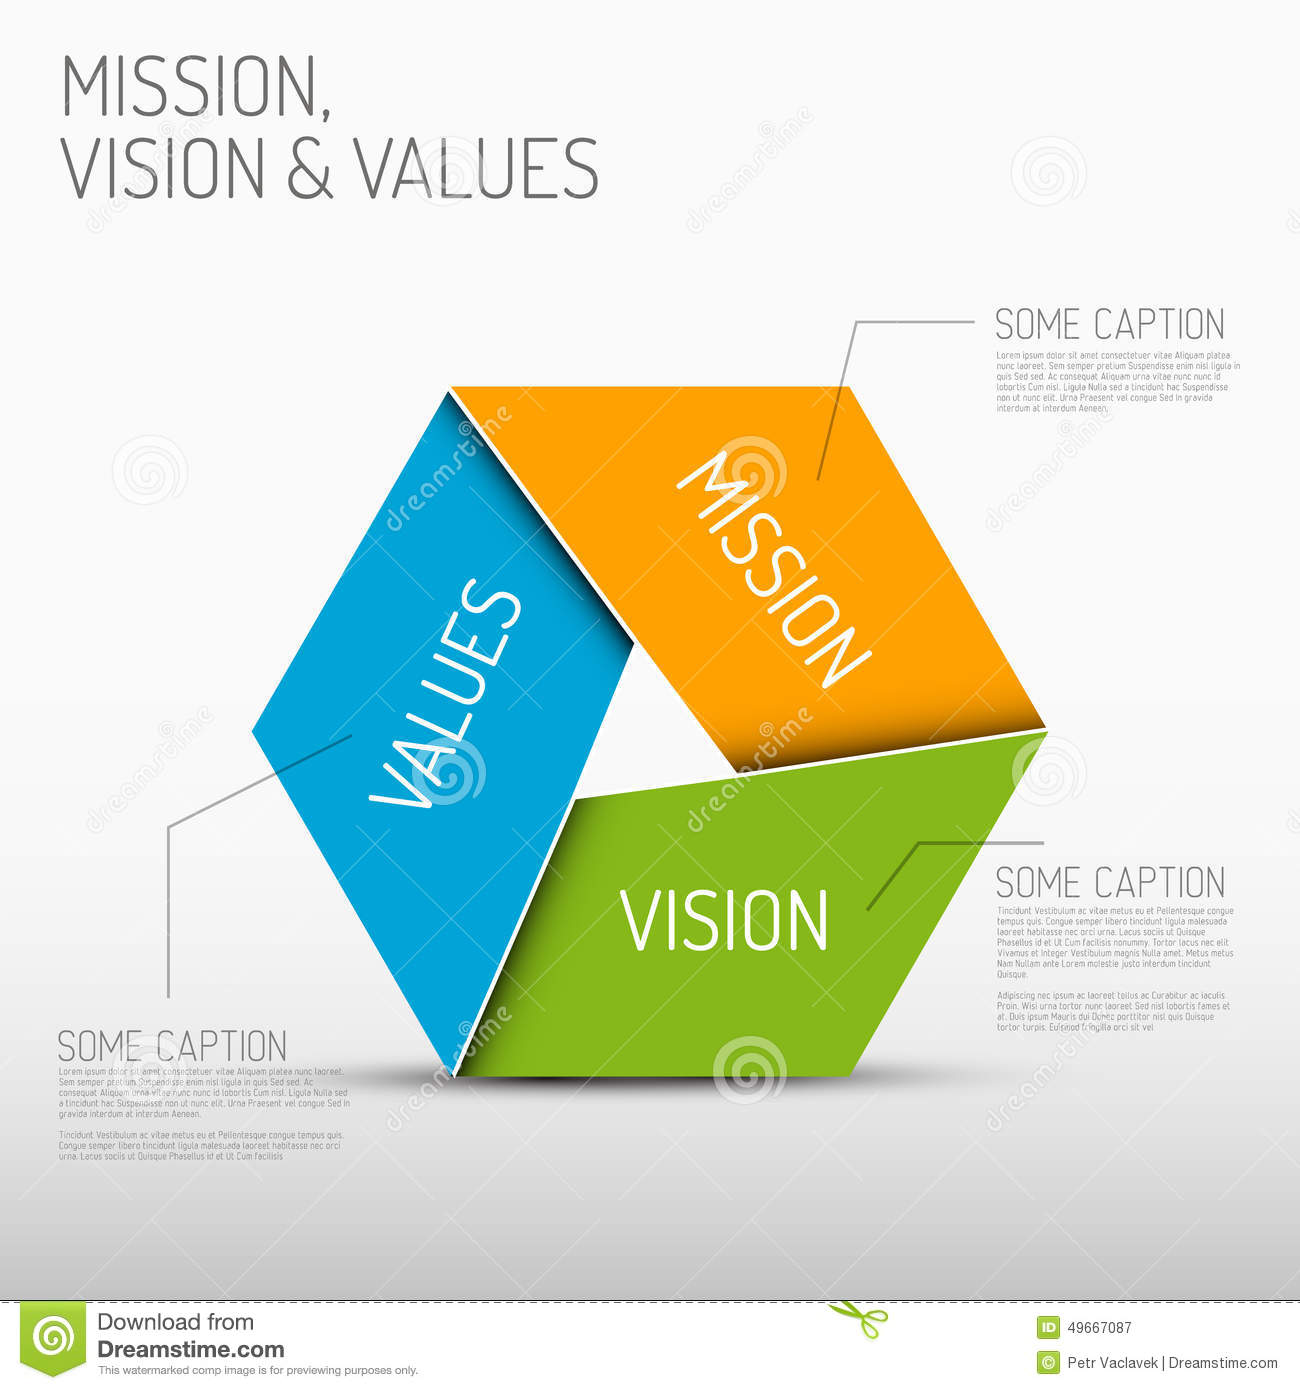 vision mission of spcis Vision of logistics company, mission of logistics company, values of logistics company, vision & mission statements, values statements, mission statement, containers, dry containers transportation, reefer carriage solutions, reefer containers, reefer transportation, reefer fleets, reefer, special projects handling, projects.